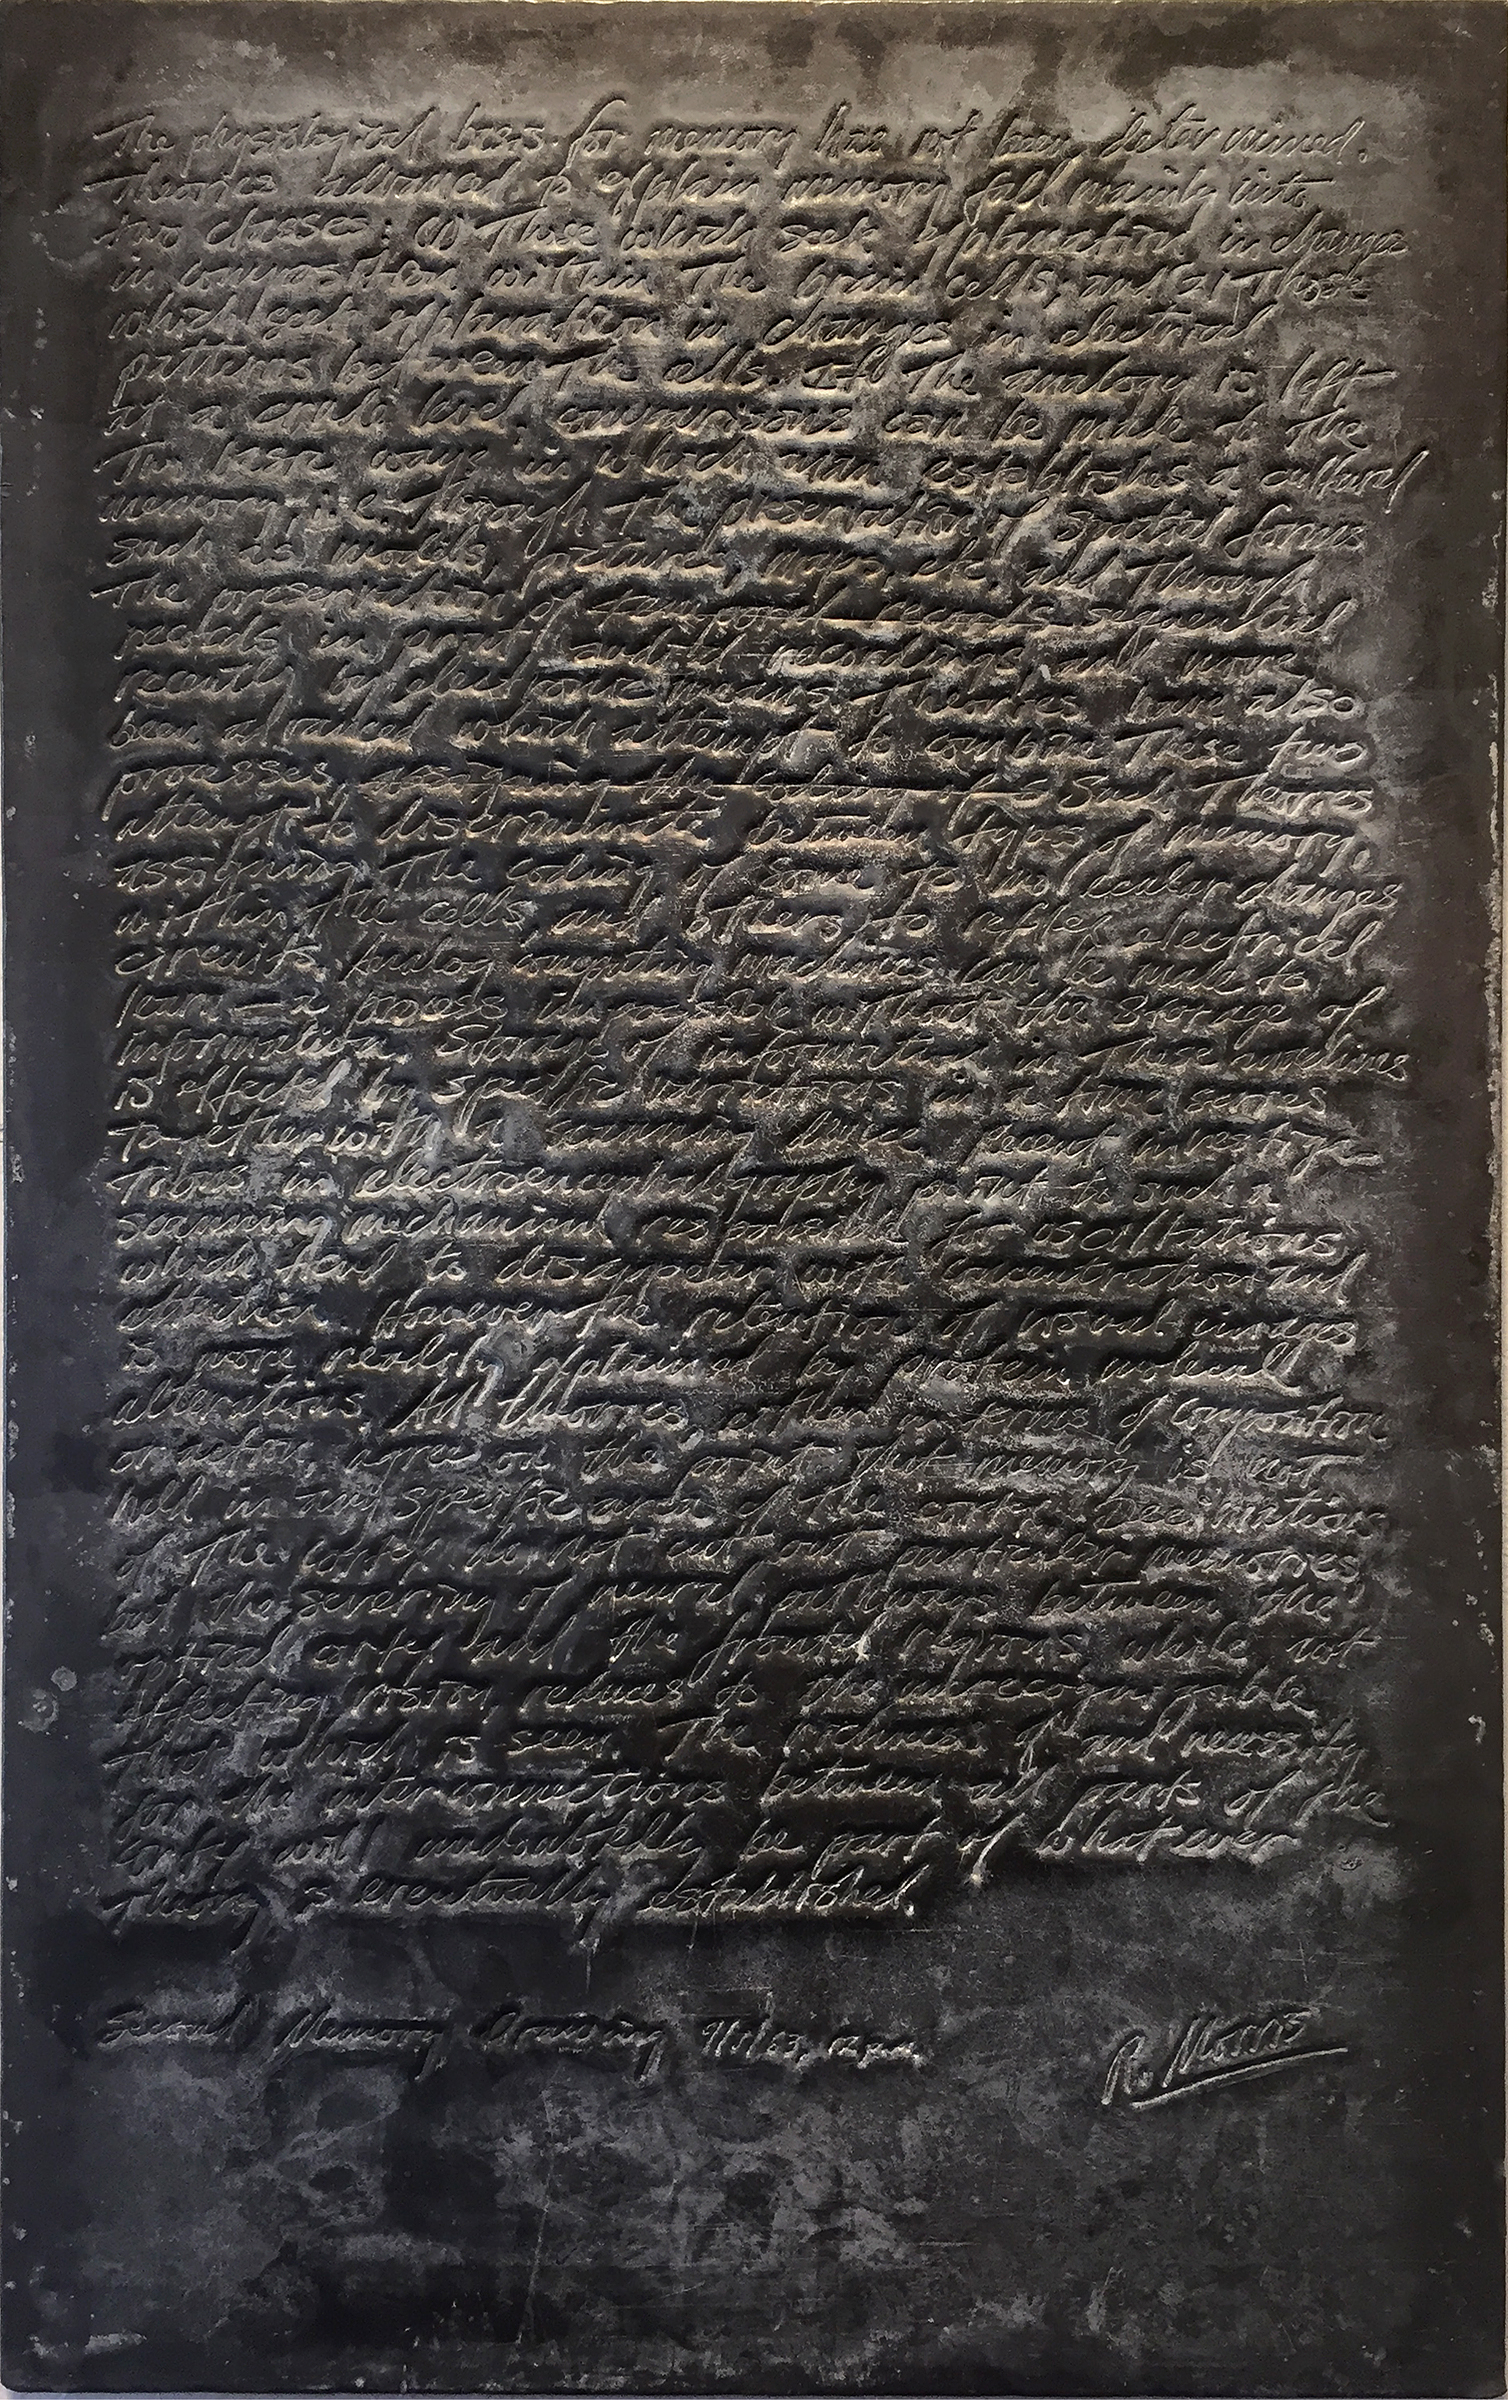 Second memory Drawing, 1963, 21 x 13 inches, Embossed lead relief panel (SOLD)